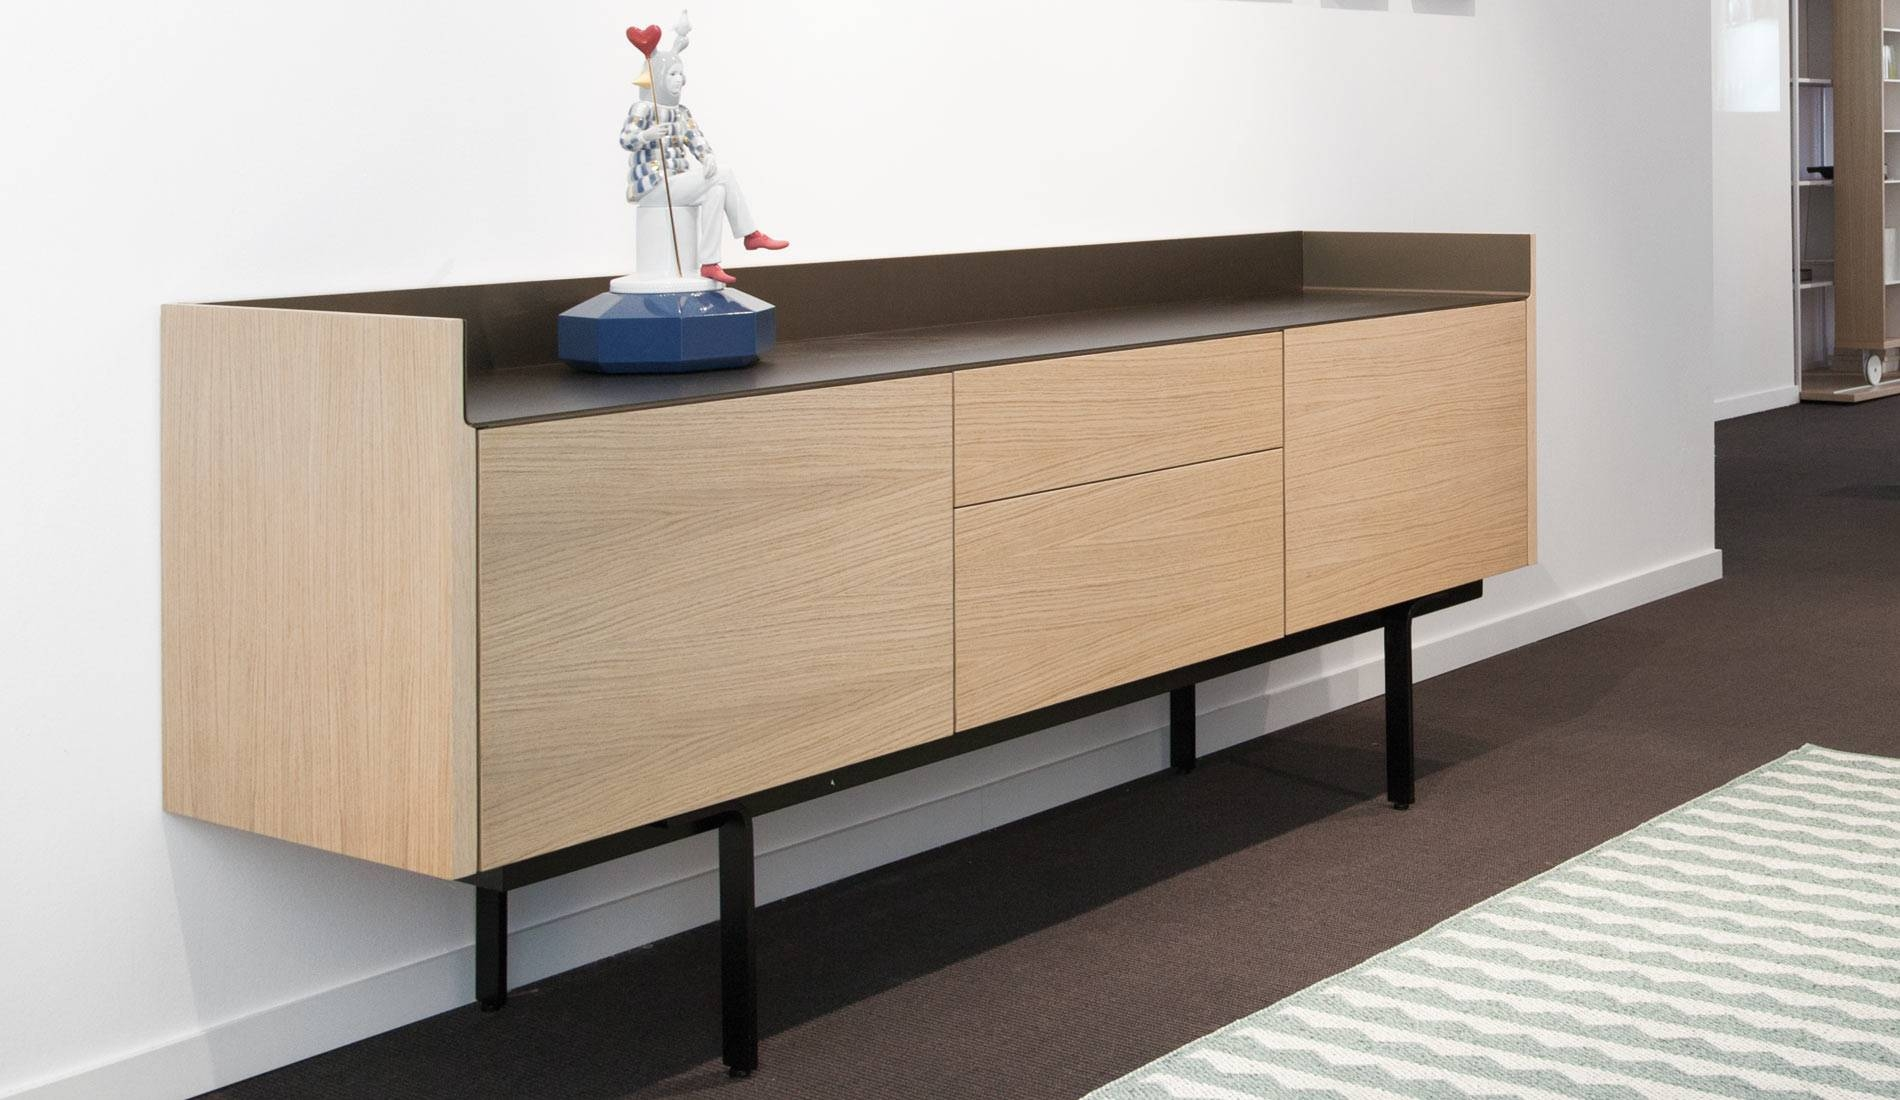 Punt Stockholm 3B Sideboard | Dopo Domani Pertaining To Most Current Stockholm Sideboards (#7 of 15)